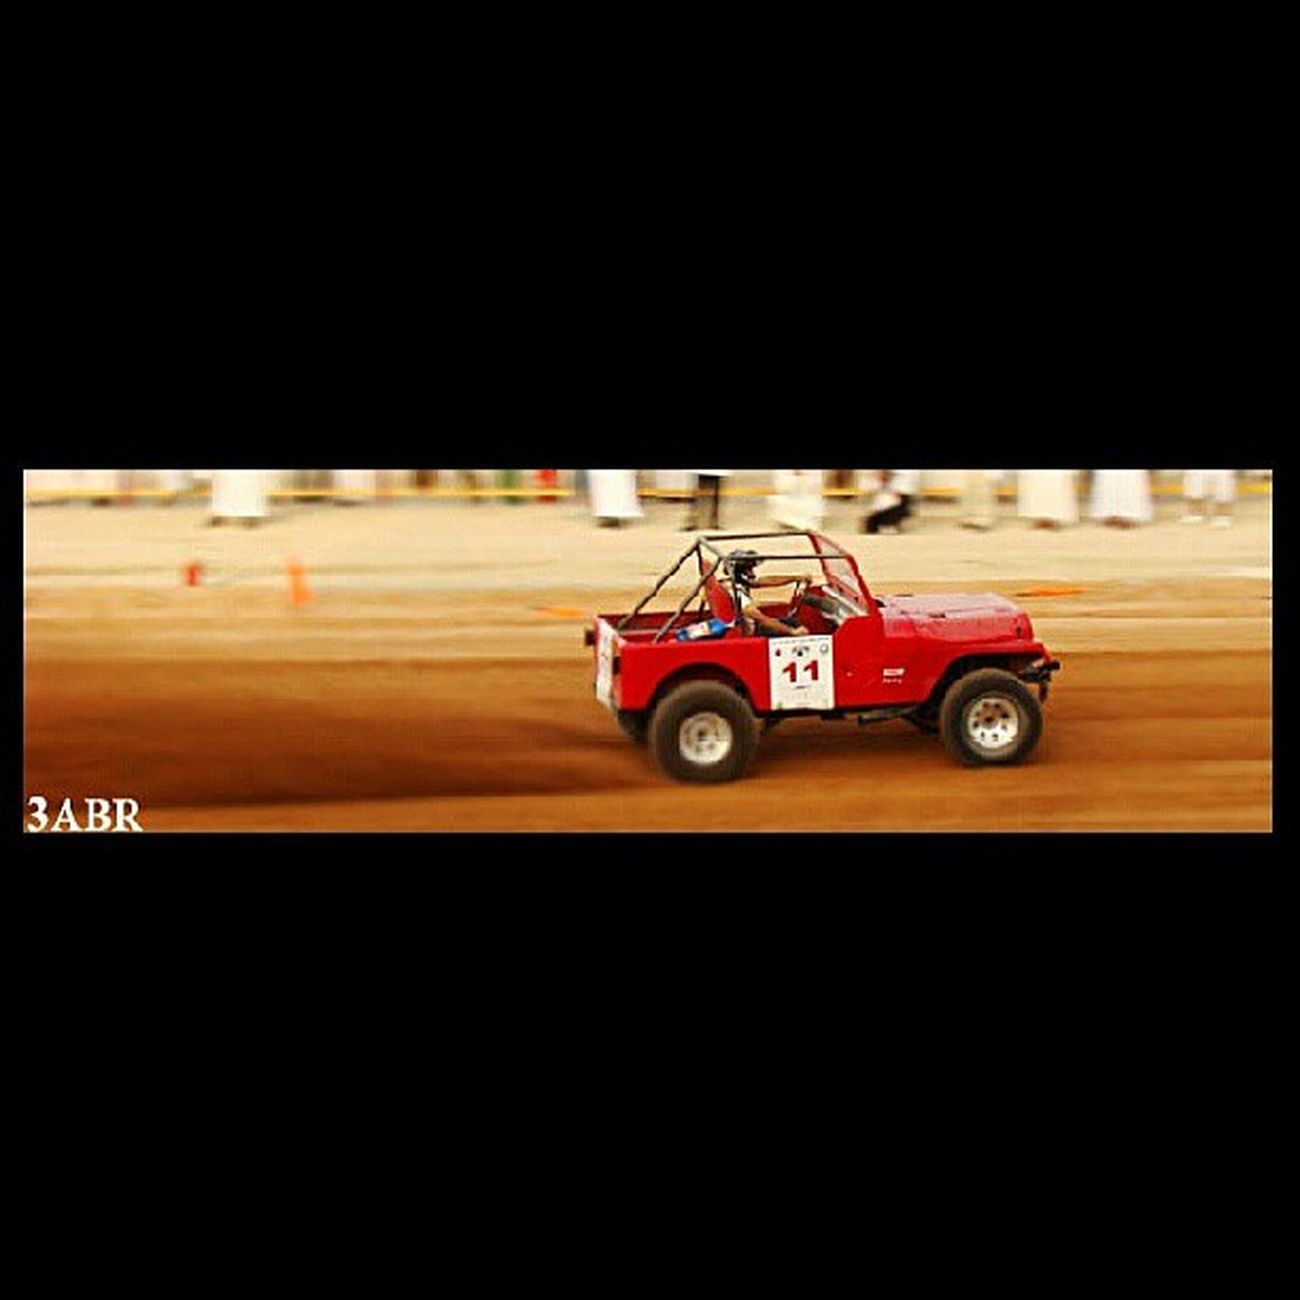 Motorsport Motorsports Car Race road track HASH_STAGRAM sport sports extreme السعودية ksa wheels rims trackday fast racecar sportcar rallycar درق racetrack motor instacar instacars تطويق